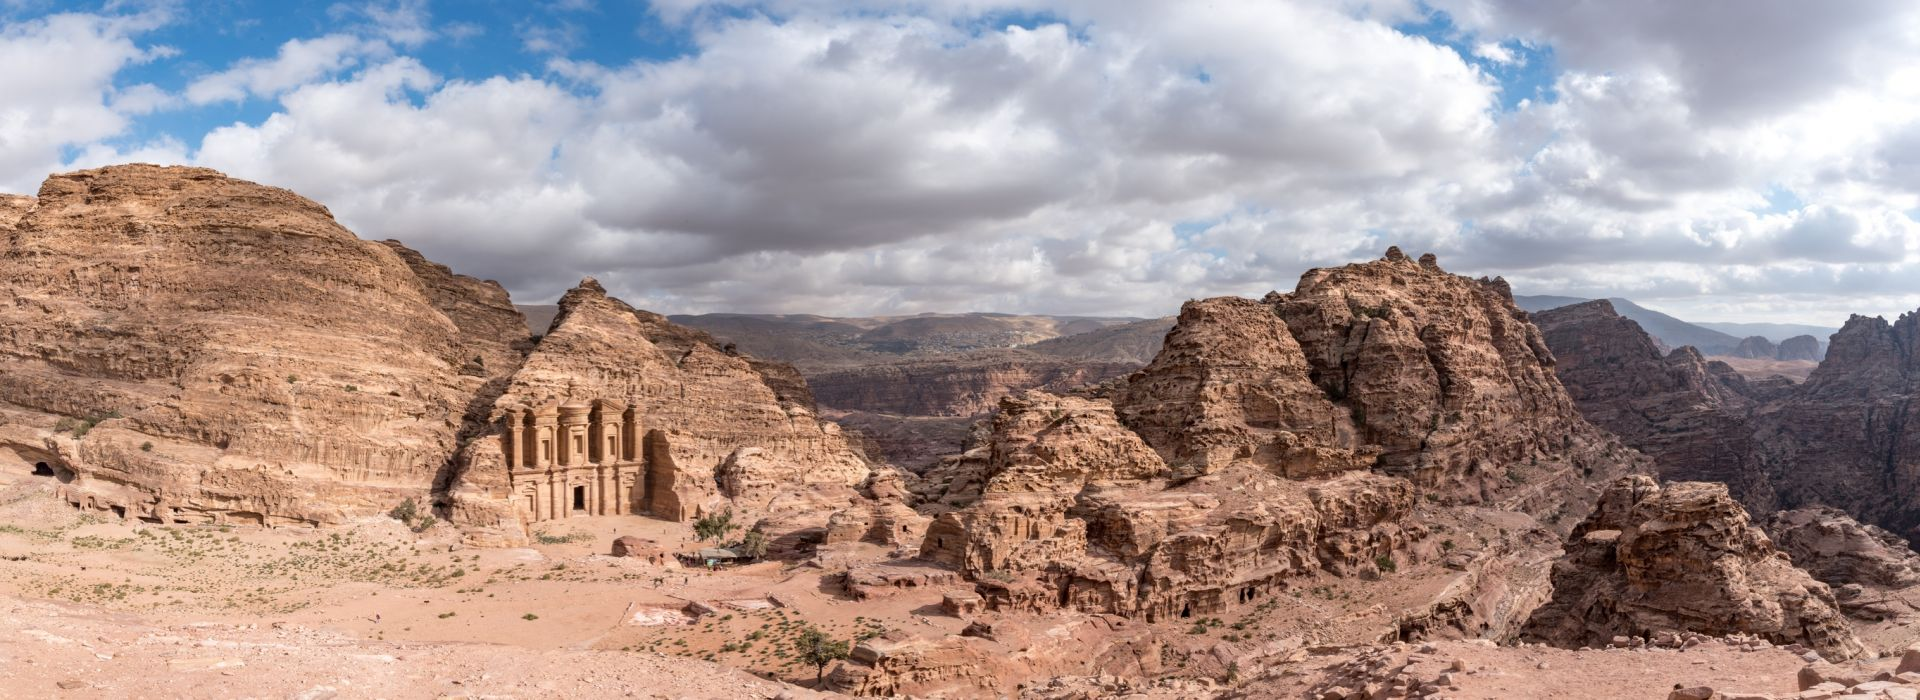 Travelling Jordan - Tours and Holiday Packages in Jordan